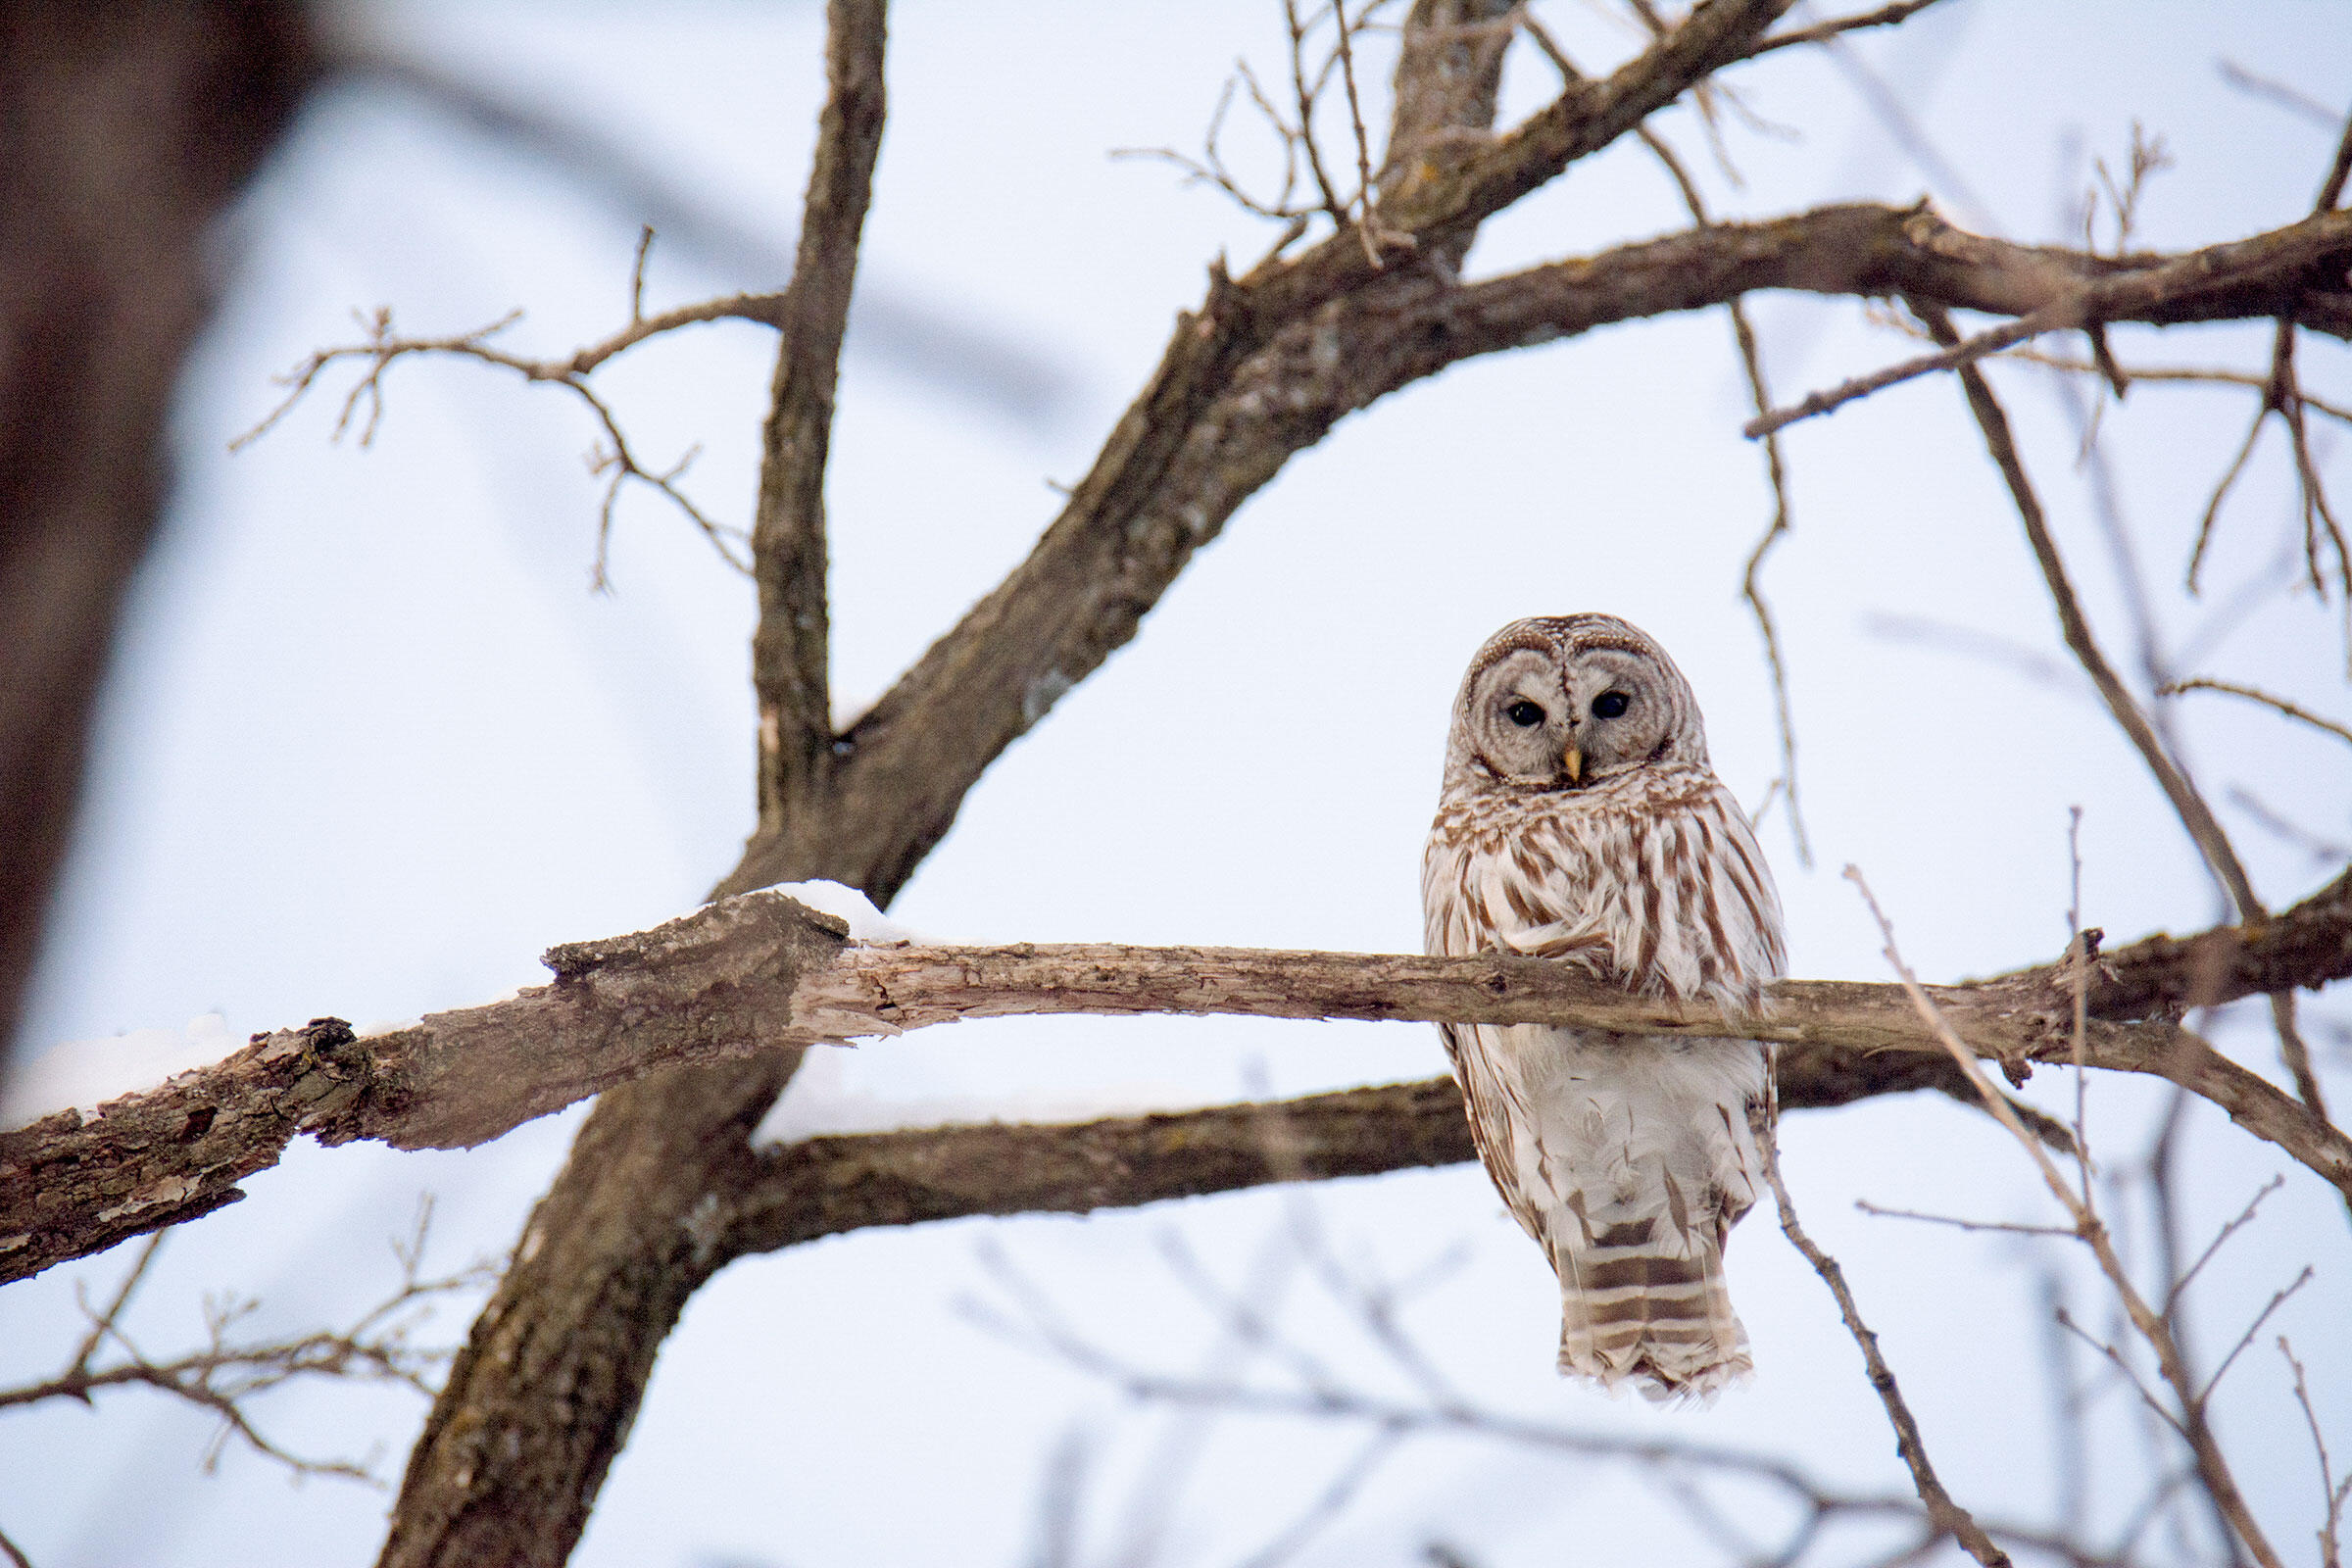 Barred Owl's exhibit extreme eyeshine when caught by a beam of light, possibly explaining the glowing red eyes associated with the Mothman. Alec Malenfant/Audubon Photography Awards